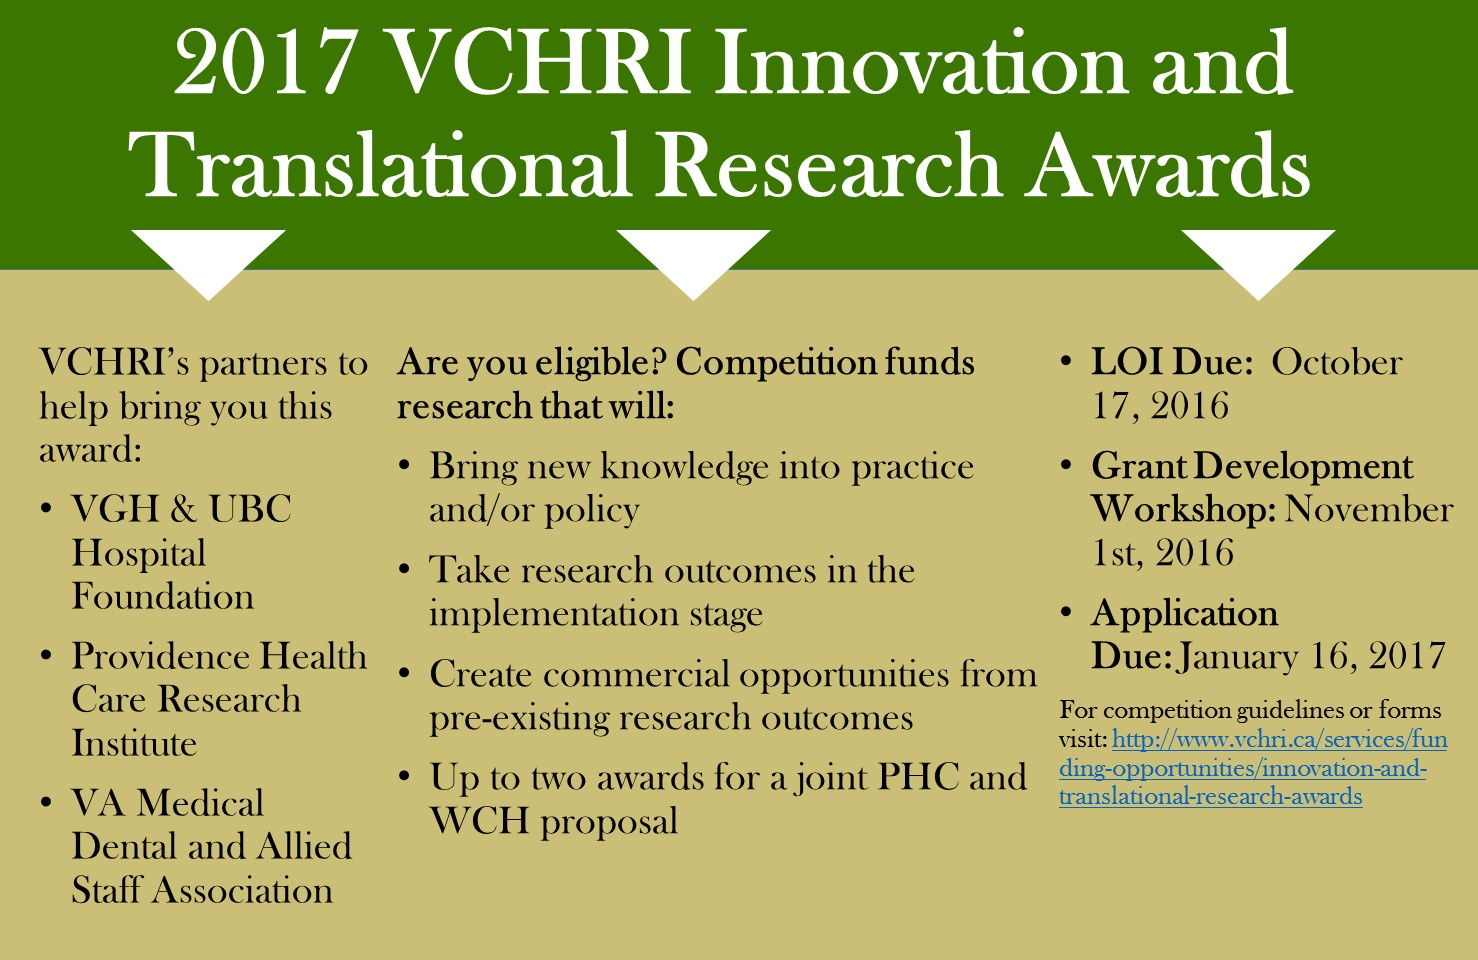 2017 VCHRI Innovation and Translational Research Awards. Visit http://www.vchri.ca/services/funding-opportunities/innovation-and-translational-research-awards for guidelines and forms.